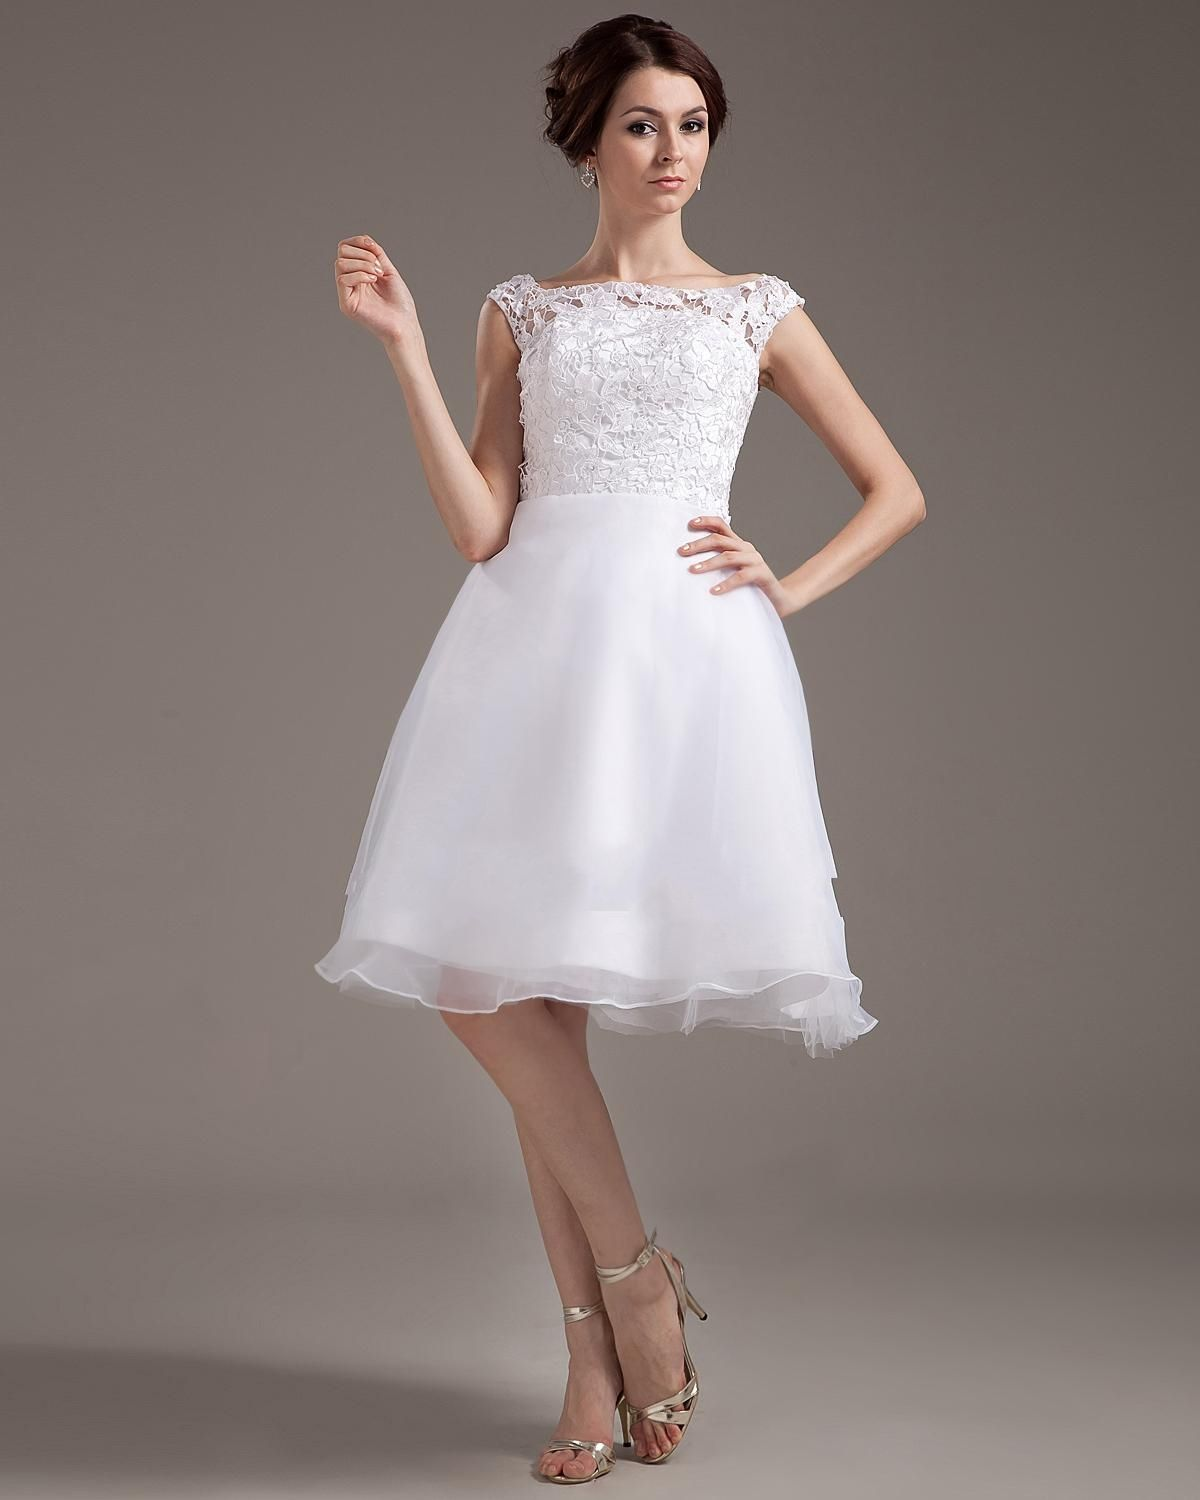 20 Cool Short Wedding Dresses